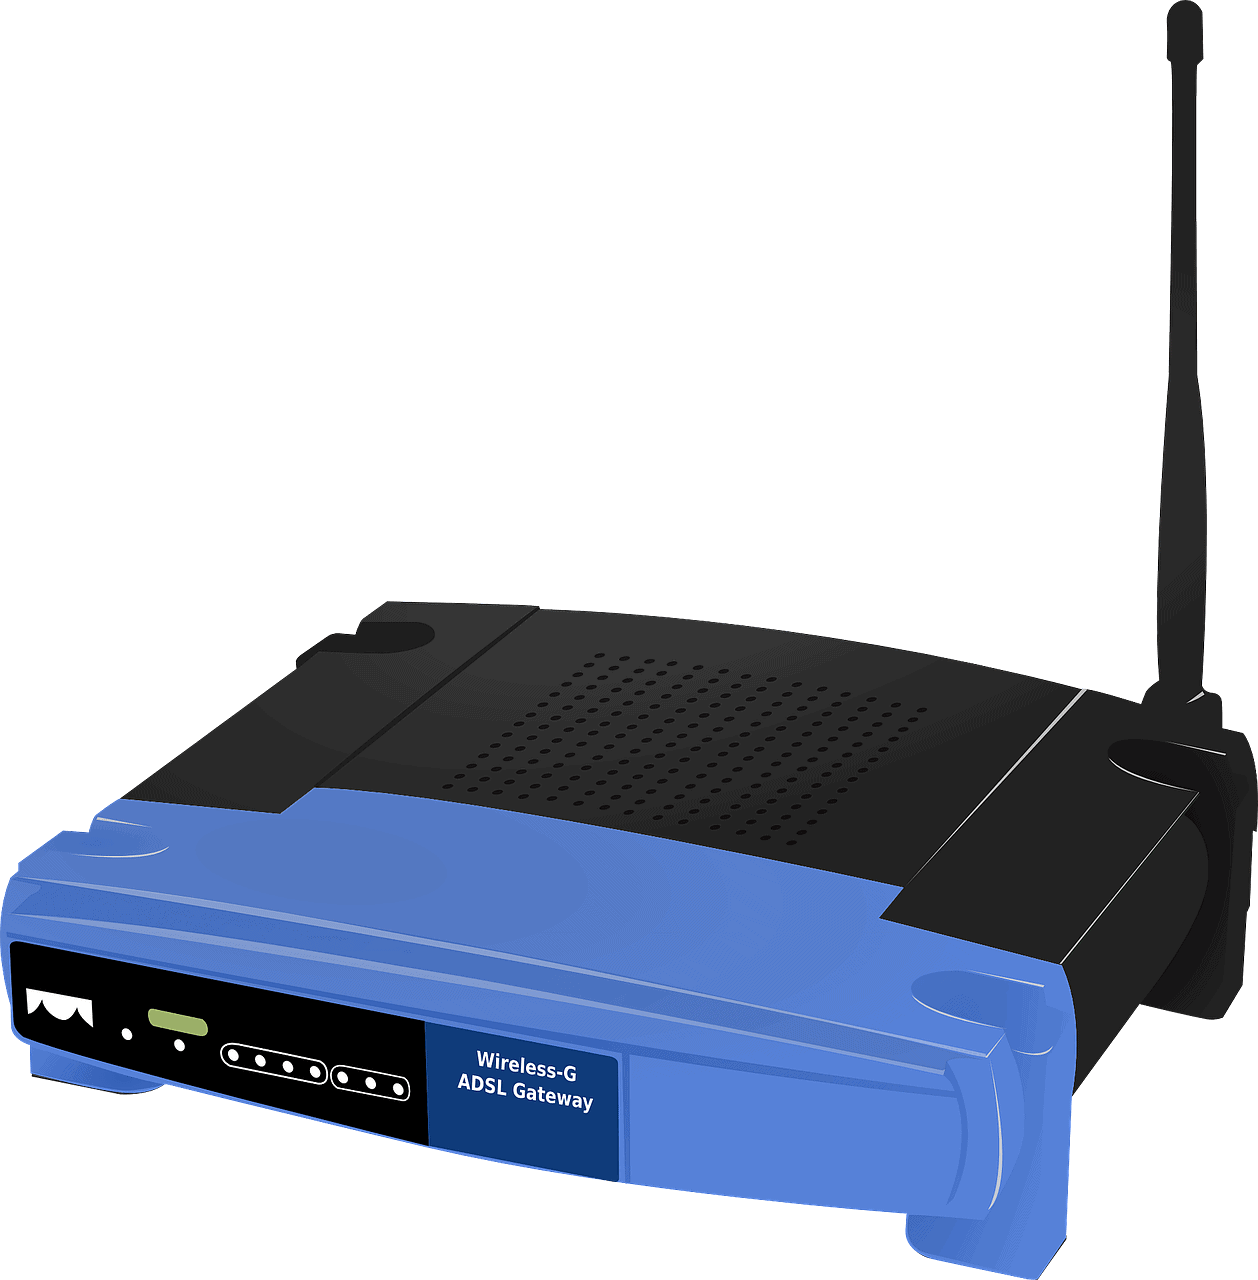 Linksys WRT1900AC vs WRT1900ACS